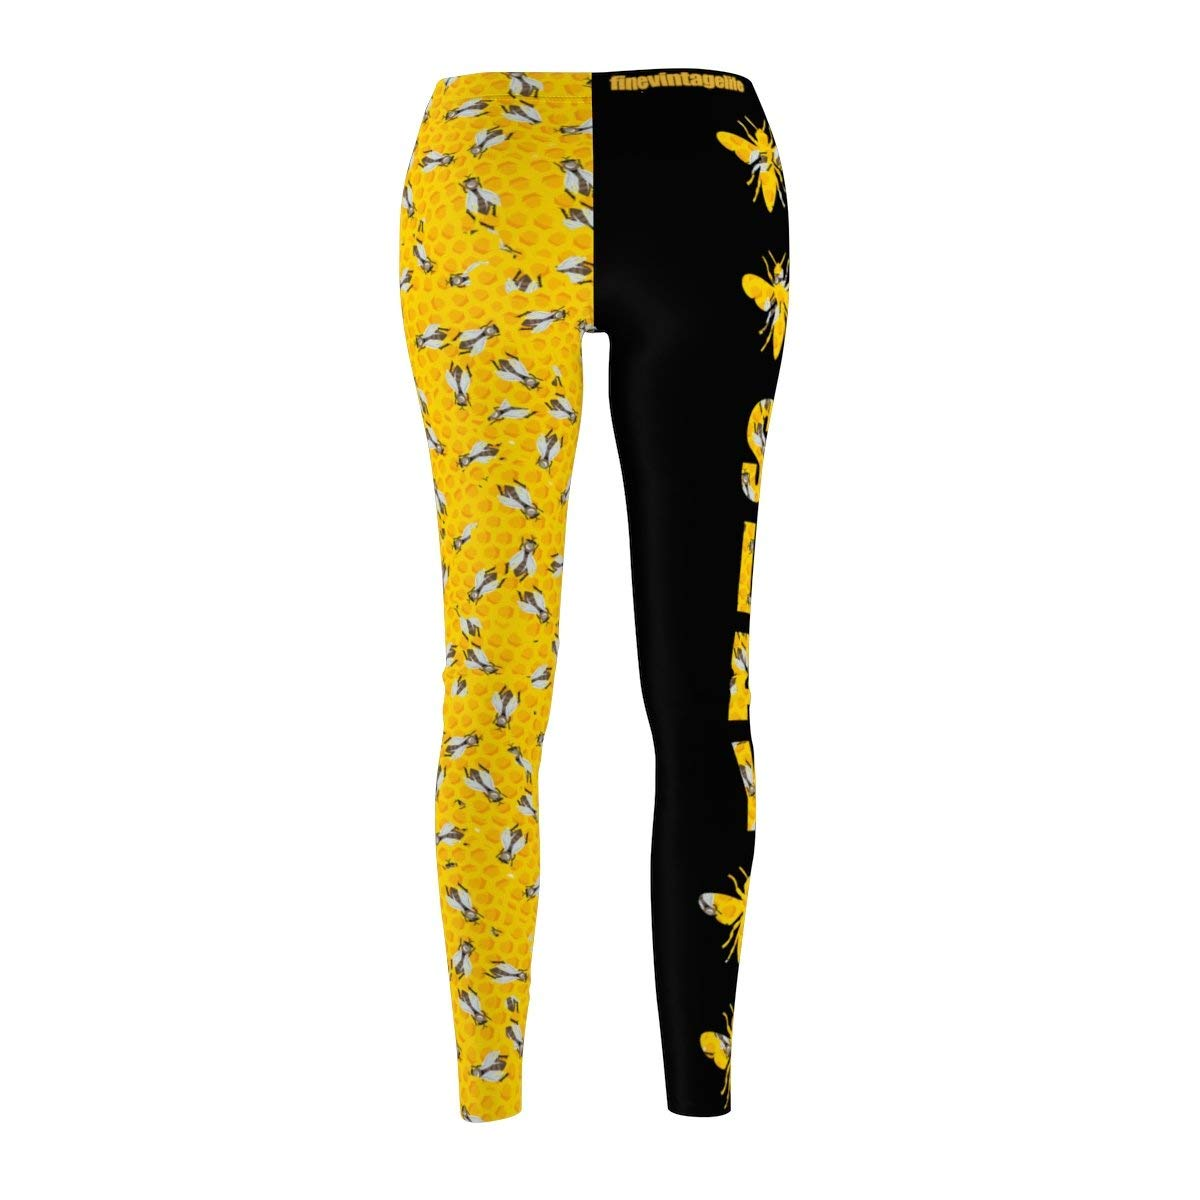 Fine Vintage Life Bey Hive Honey Comb Slay ONTRII Women's All Over Leggings - Two Tone Black by Fine Vintage Life (Image #4)